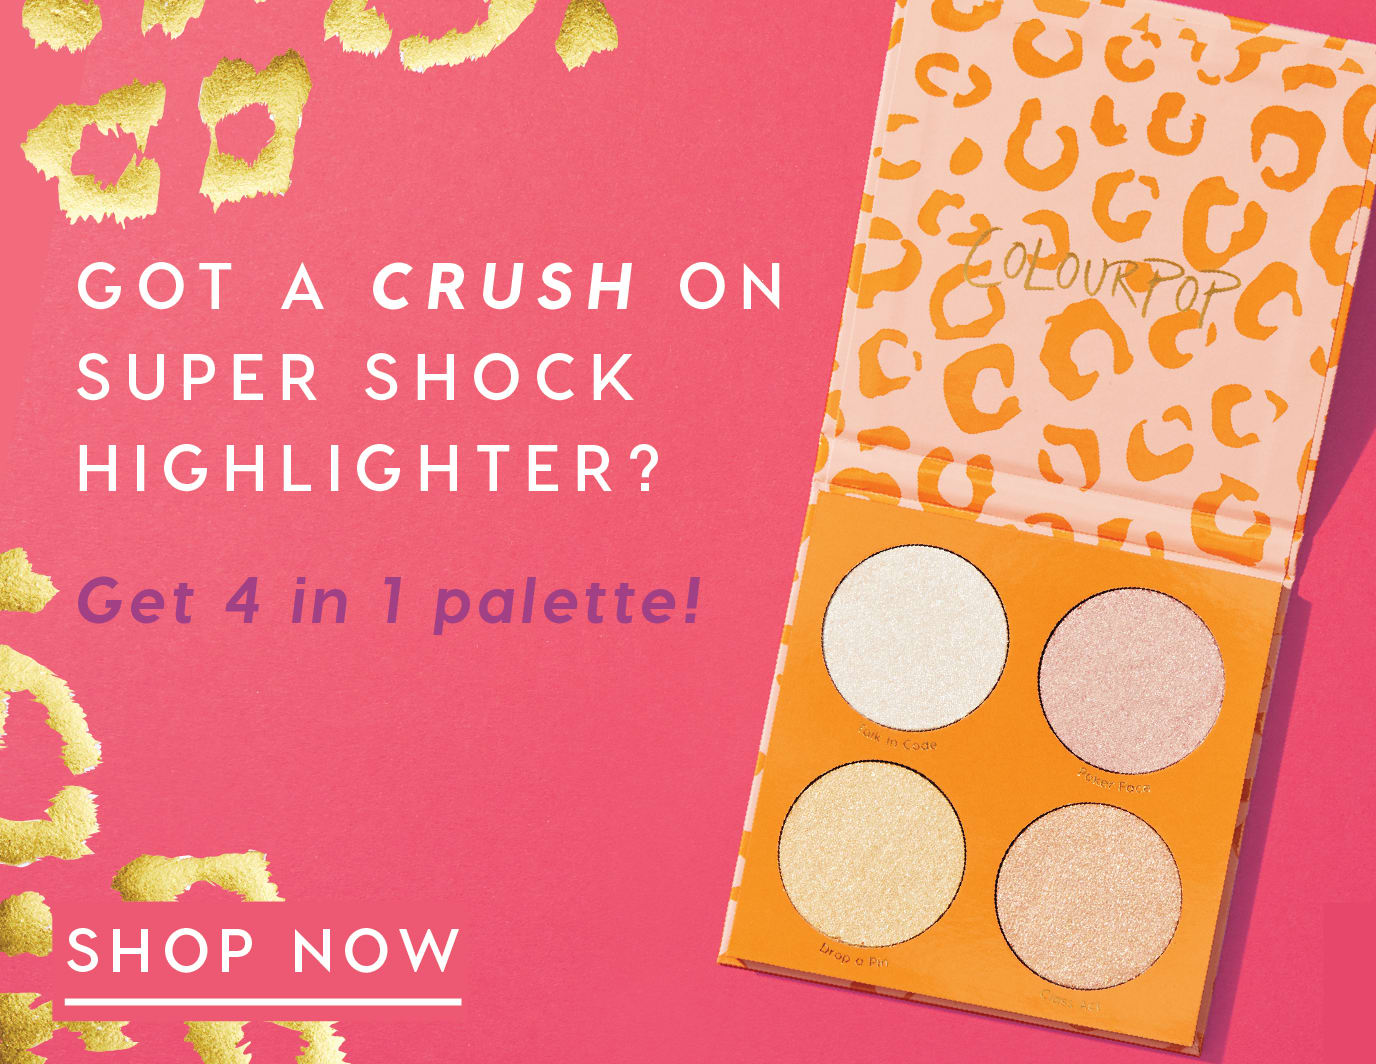 Crush on You highlighter prodcut